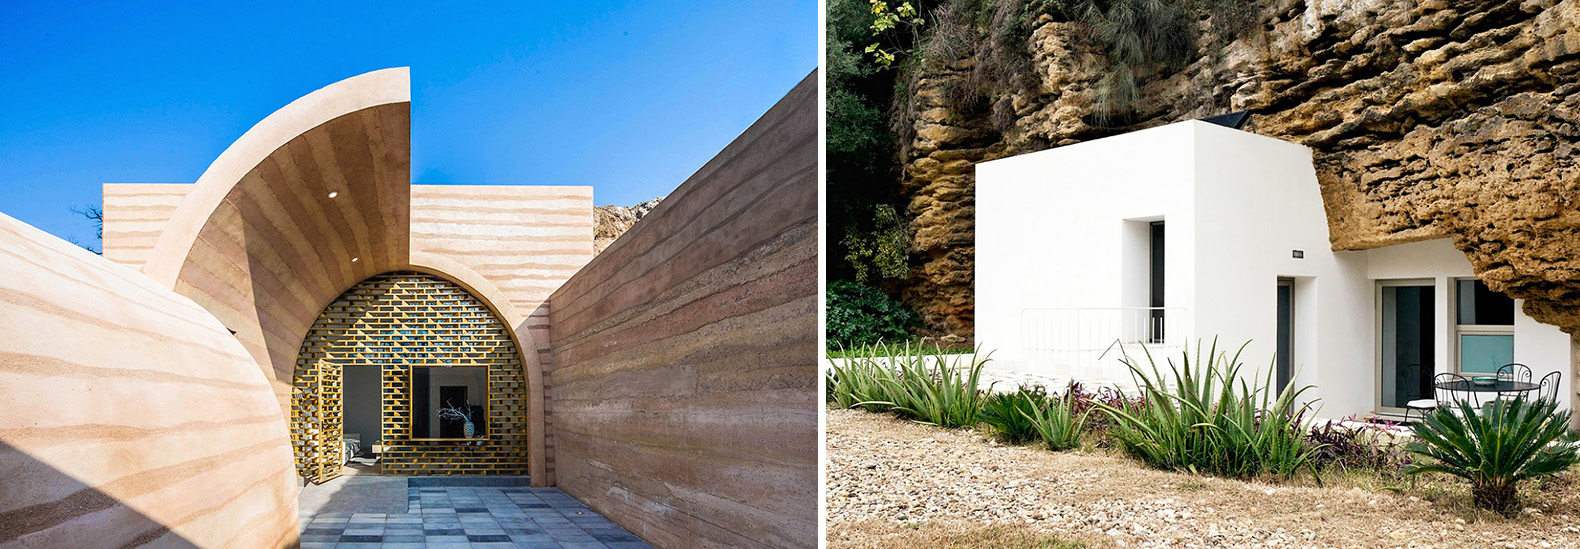 6 cool cave homes that stay comfortable in summer and warm in winter ...